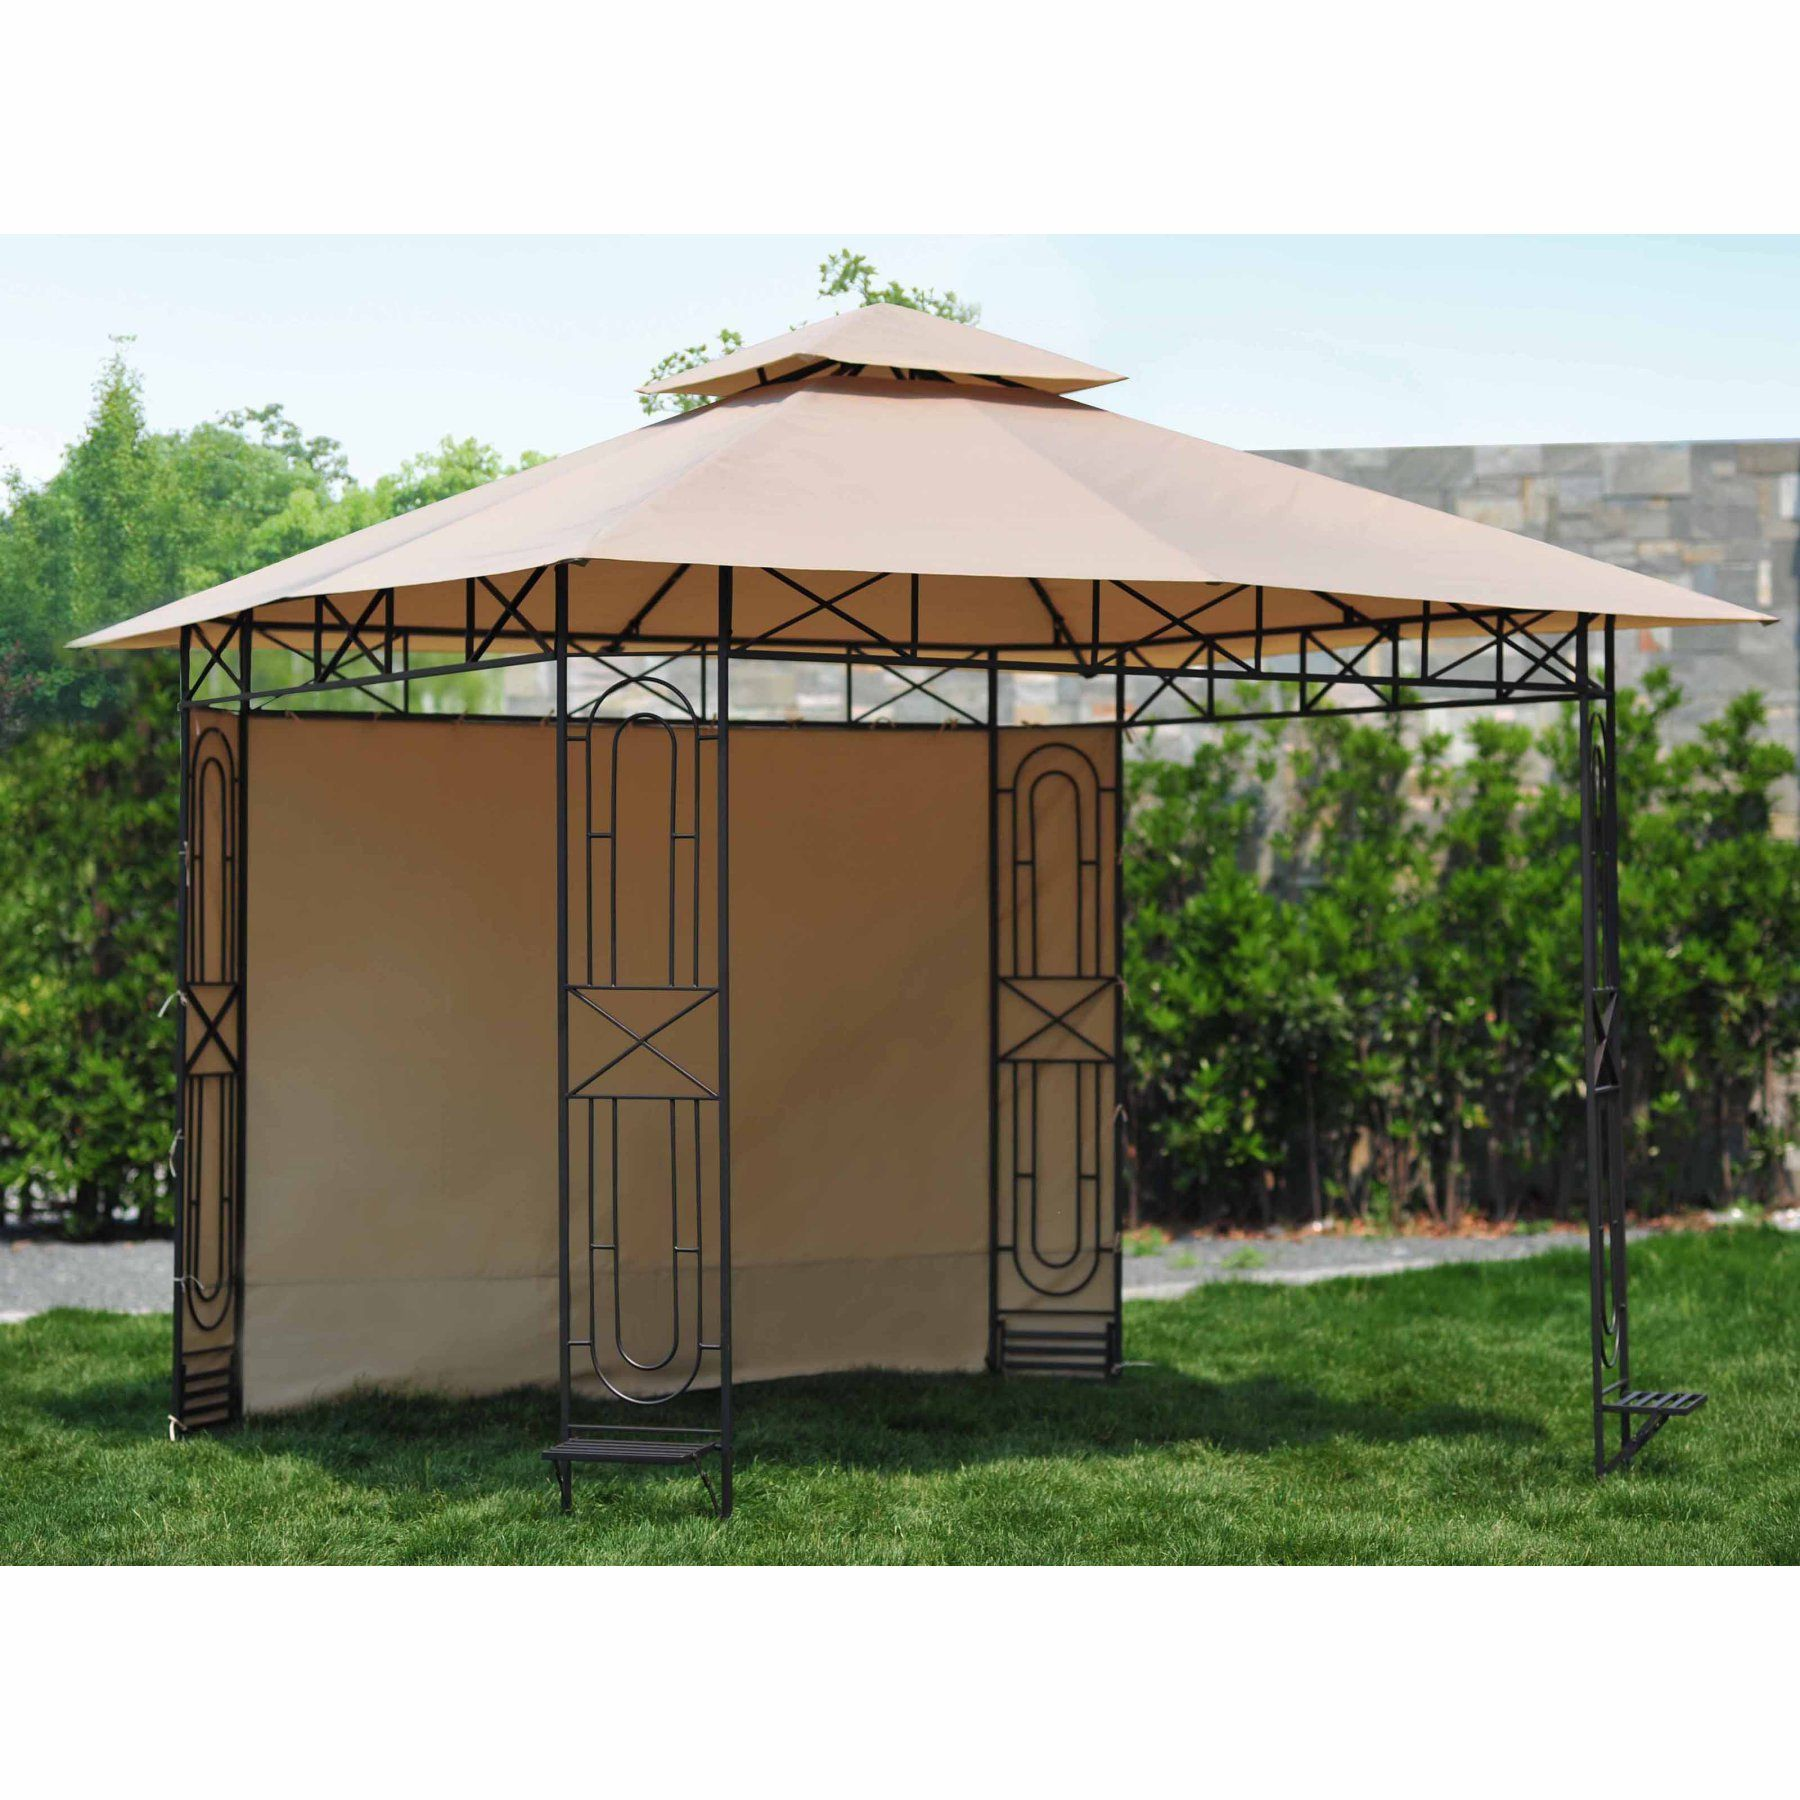 Sunjoy 10 X 10 Ft Replacement Sunshade For L Gz071pst 3 Gardenscape Gazebo 110109344 Gazebo Replacement Canopy Gazebo Outdoor Gazebos